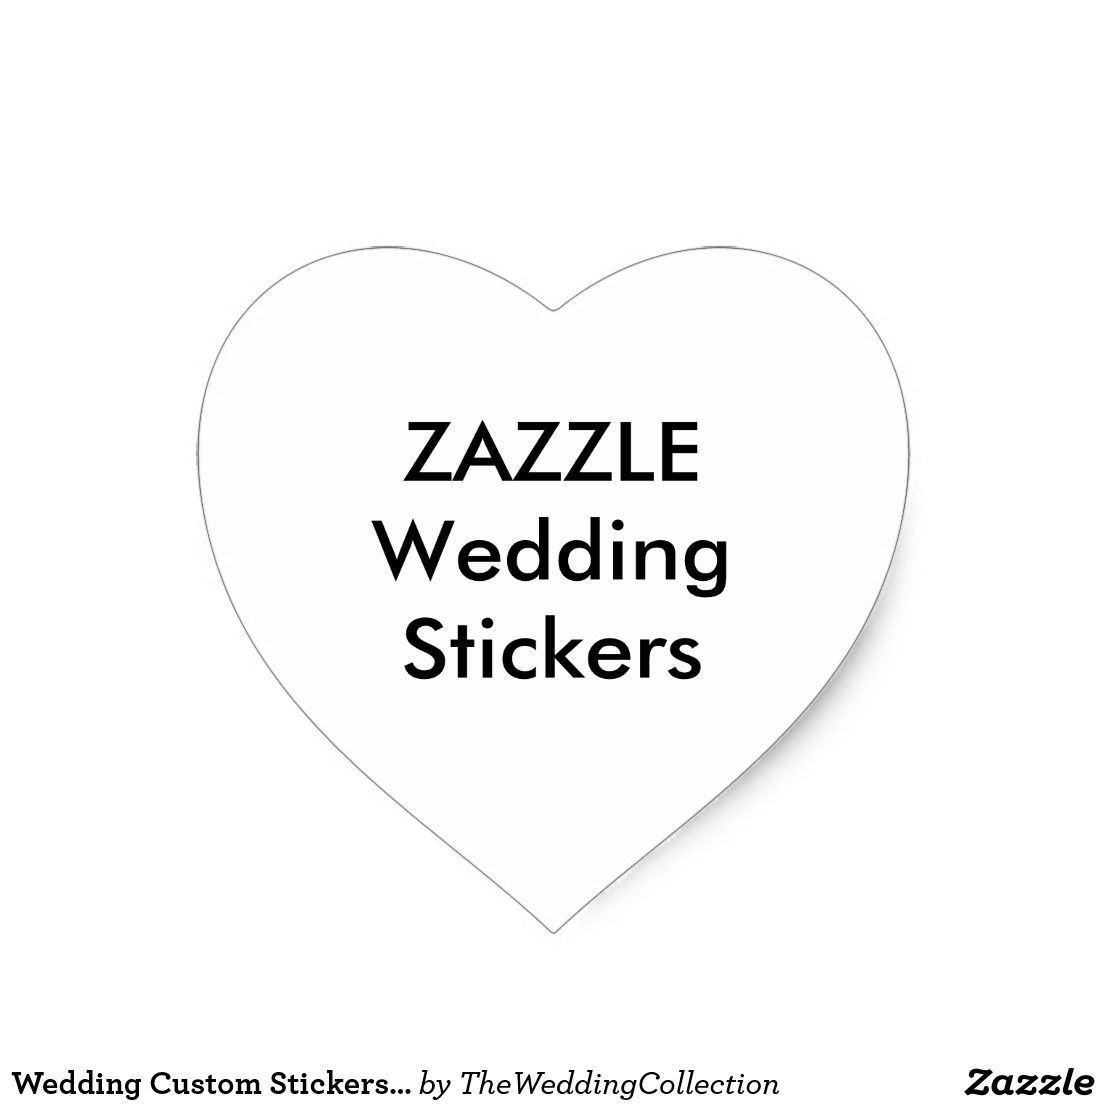 Wedding custom stickers heart matte 20 pk